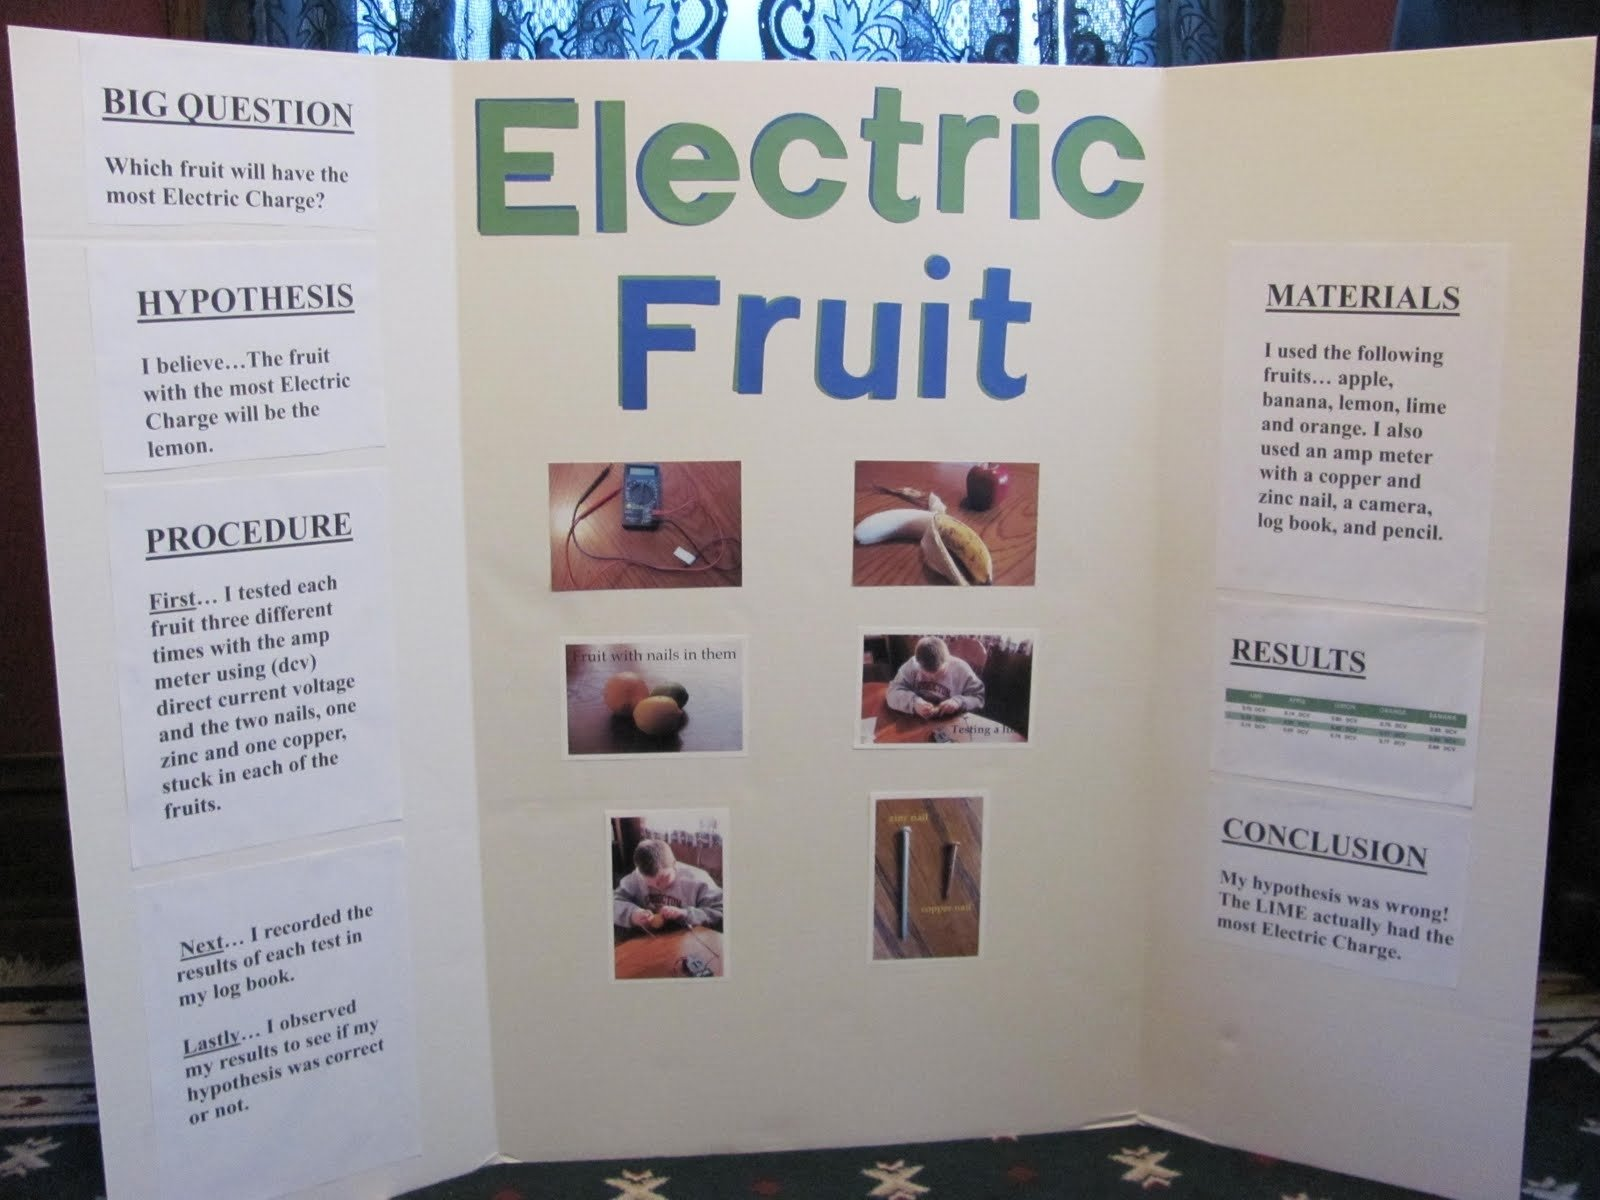 10 Famous Science Fair Projects Ideas For 4Th Graders science fair projects he estimated the lemon would but actually 8